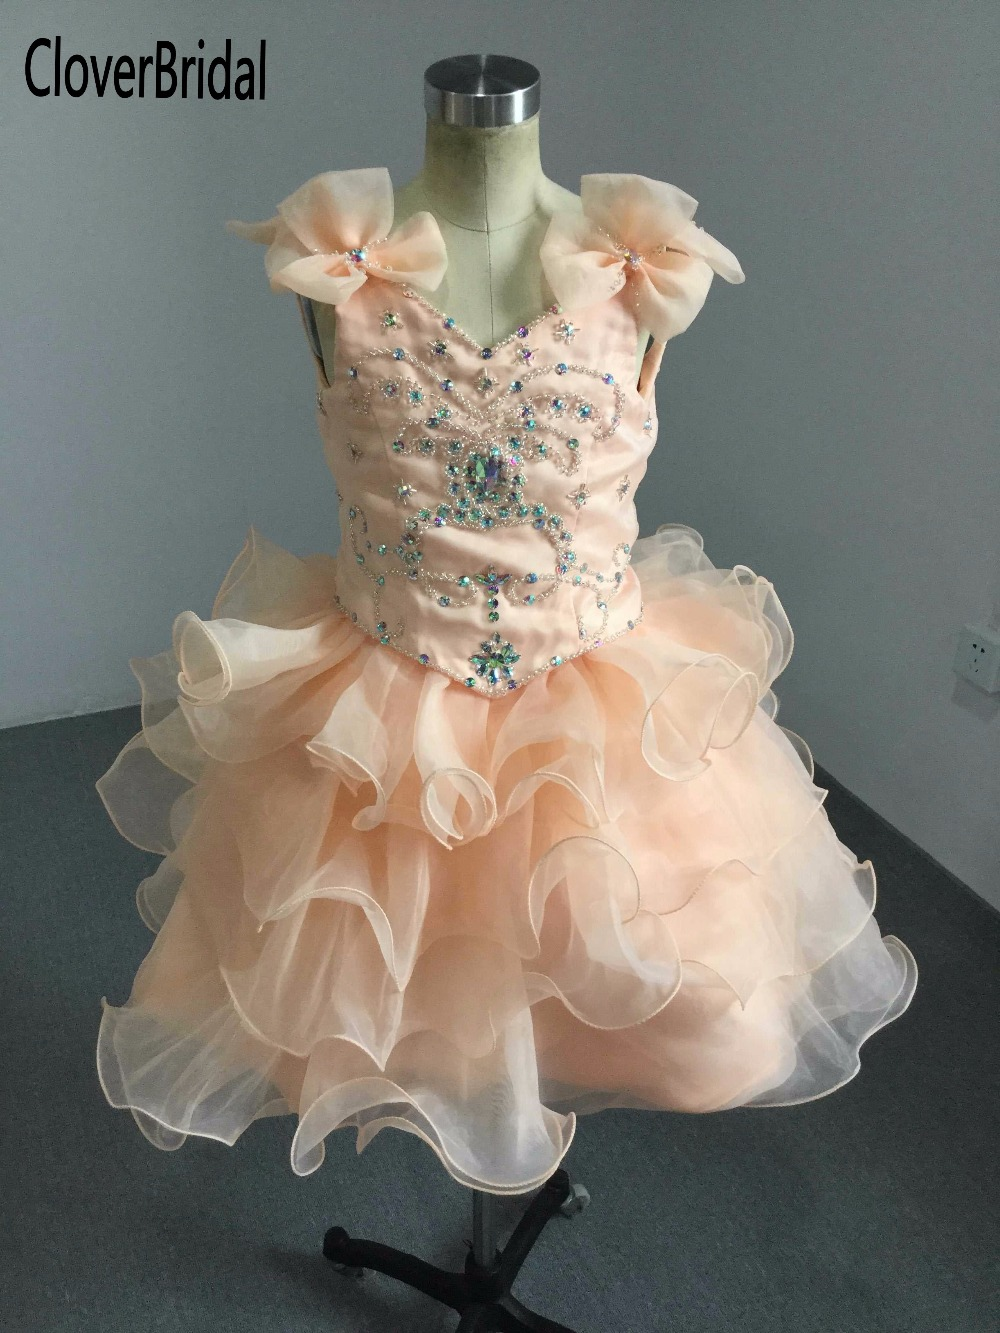 Dazzling organza ruffled beauty AB stones beaded orange toddler cupcake pageant dress with bow beaded should straps 4 years old